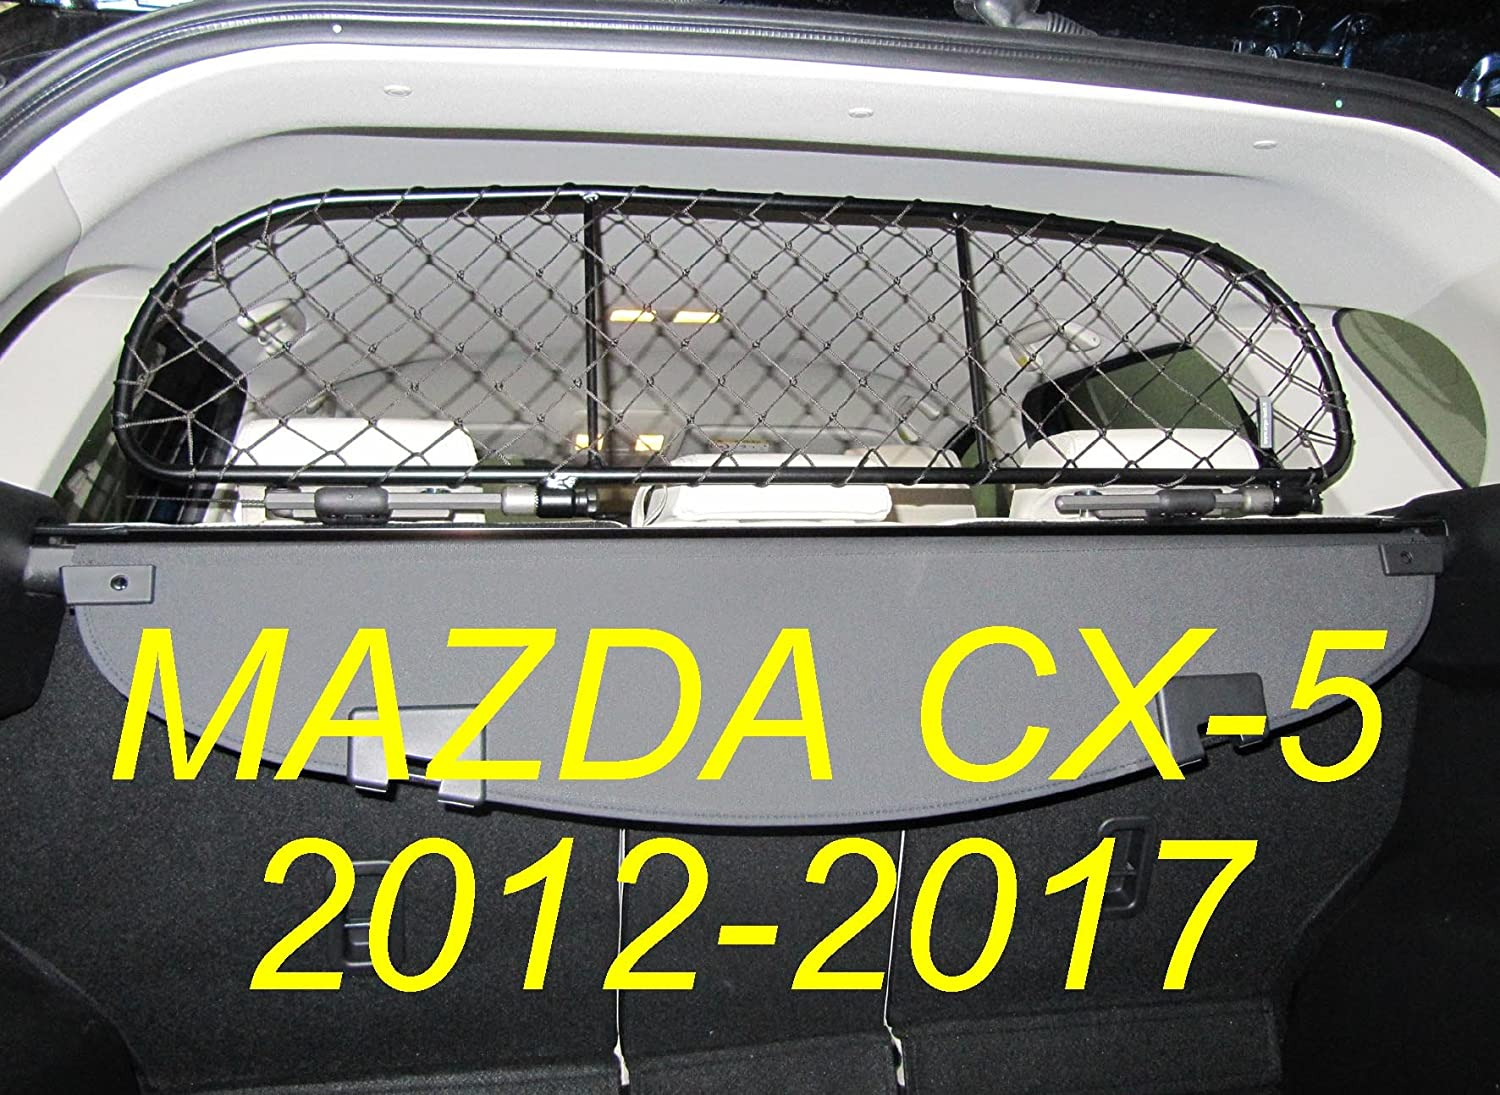 Dog Guard, Pet Barrier Net and Screen RDA65S for Mazda CX-5, car Model Produced from 2012 to 2017, for Luggage and Pets